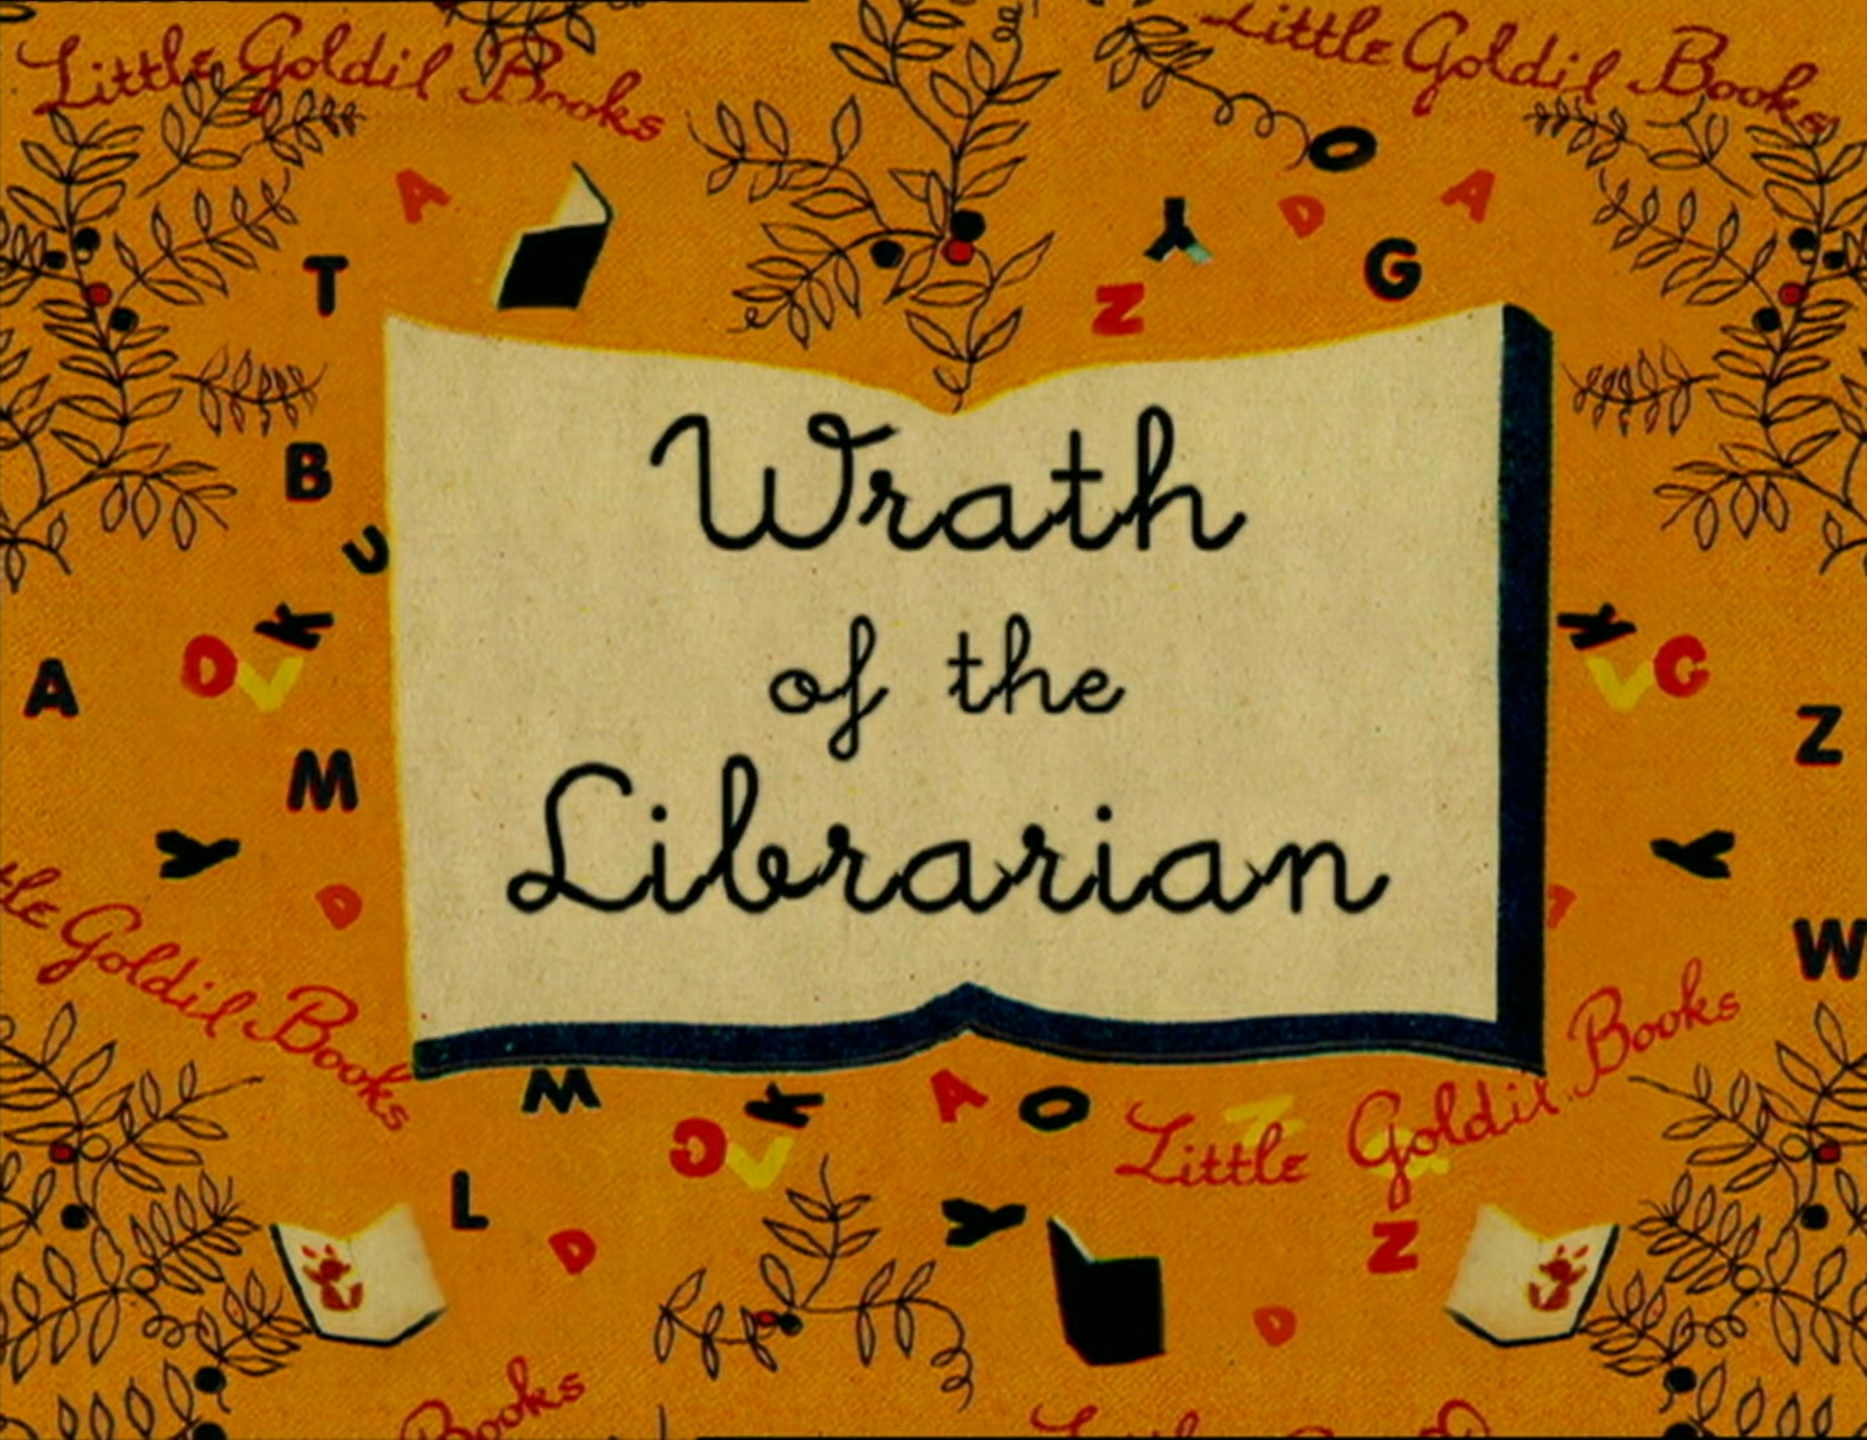 File:Titlecard 412b Wrath of the Librarian.jpg